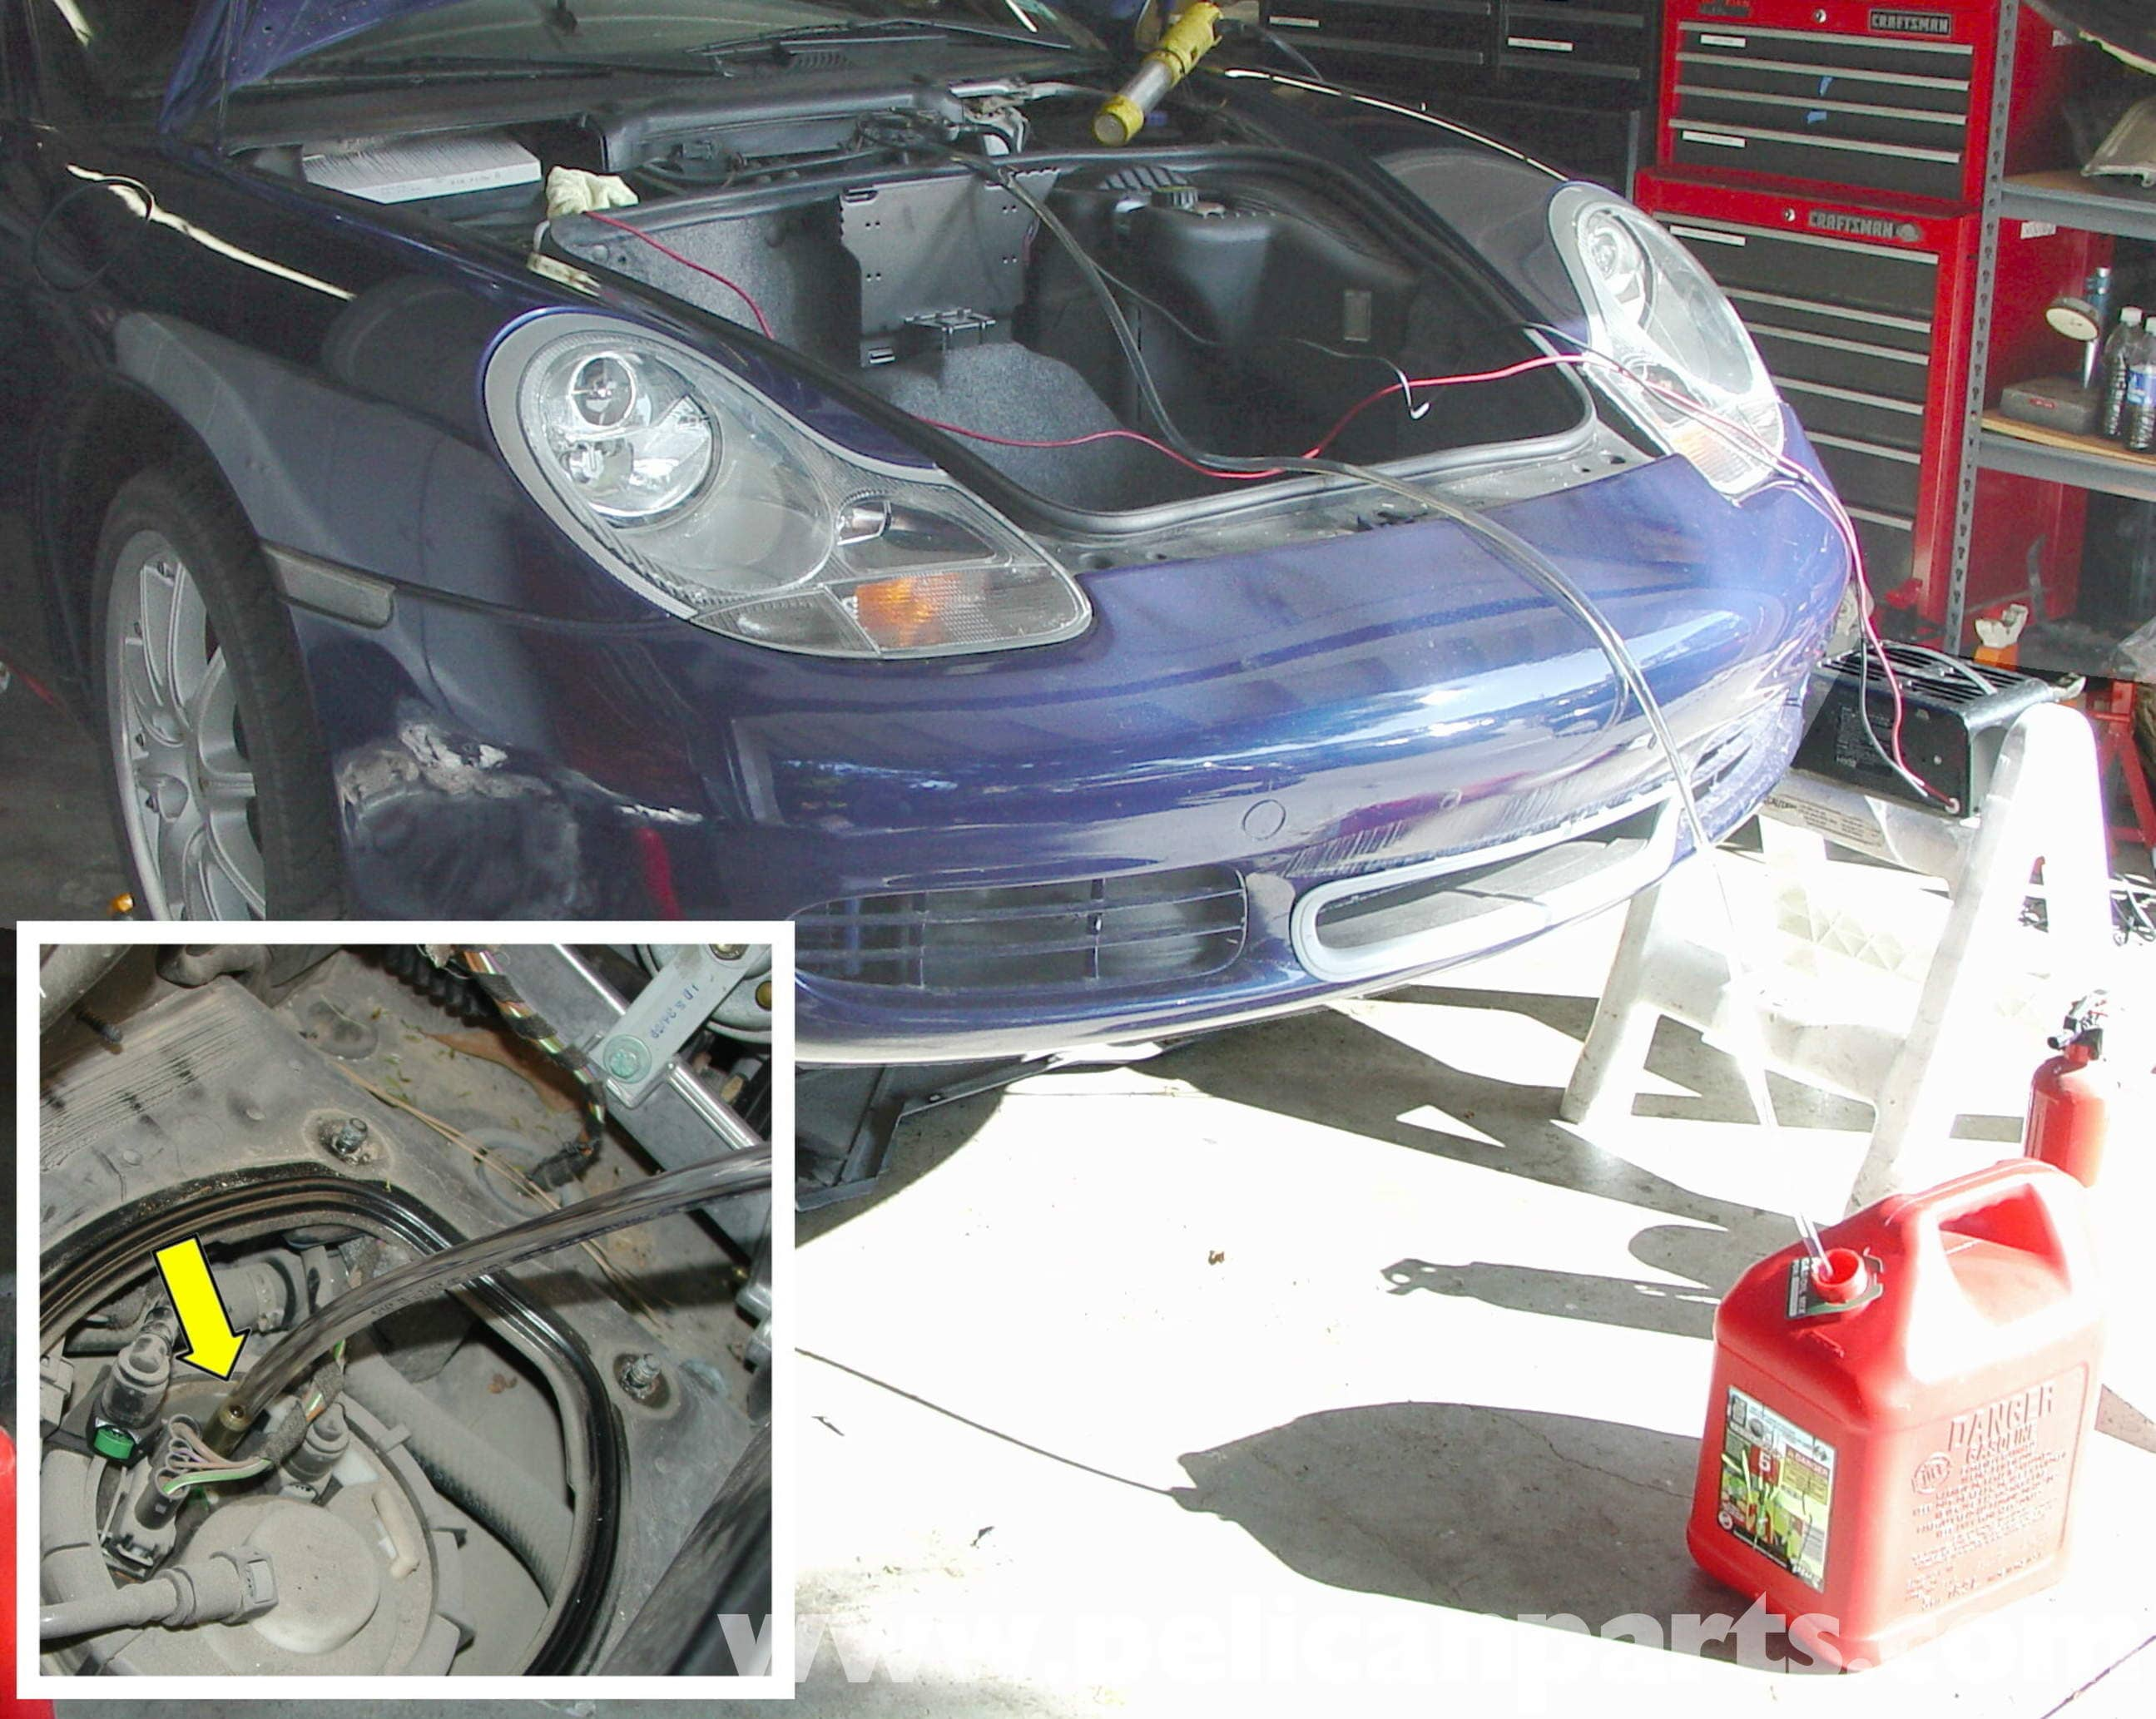 Porsche Boxster Fuel Pump Replacement 986 987 1997 08 2014 Dodge Ram 1500 Wiring Diagram Large Image Extra